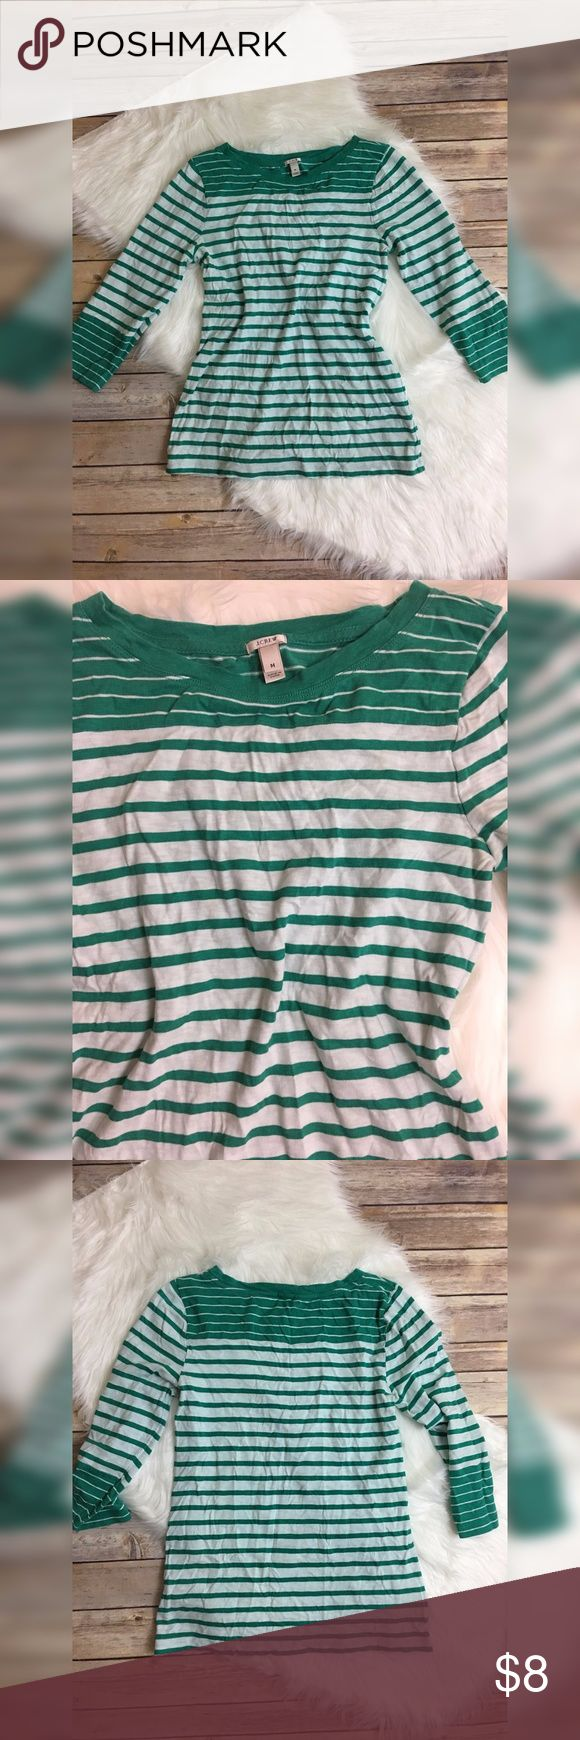 J.Crew striped casual 3/4 length tee shirt 100% cotton. boat neck., style#1519 J. Crew Tops